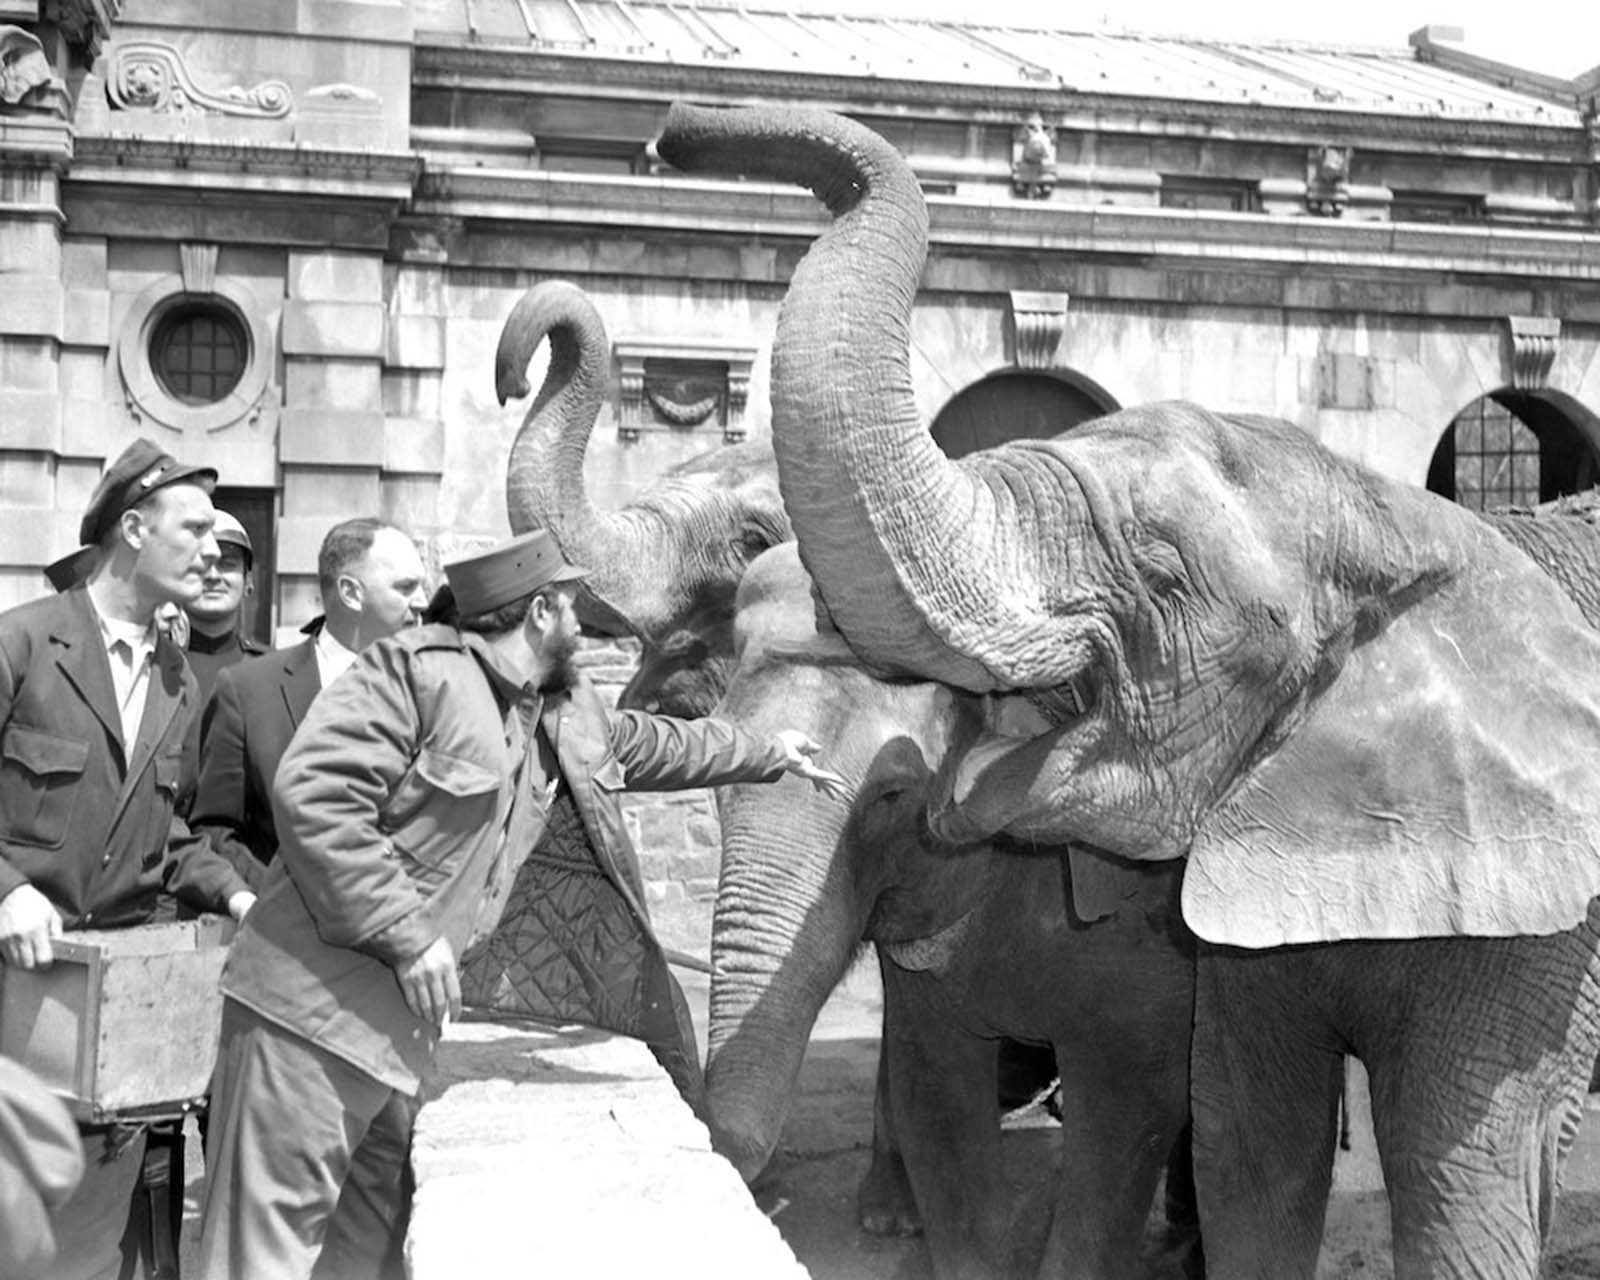 Castro tosses a peanut to an elephant at the Bronx Zoo.